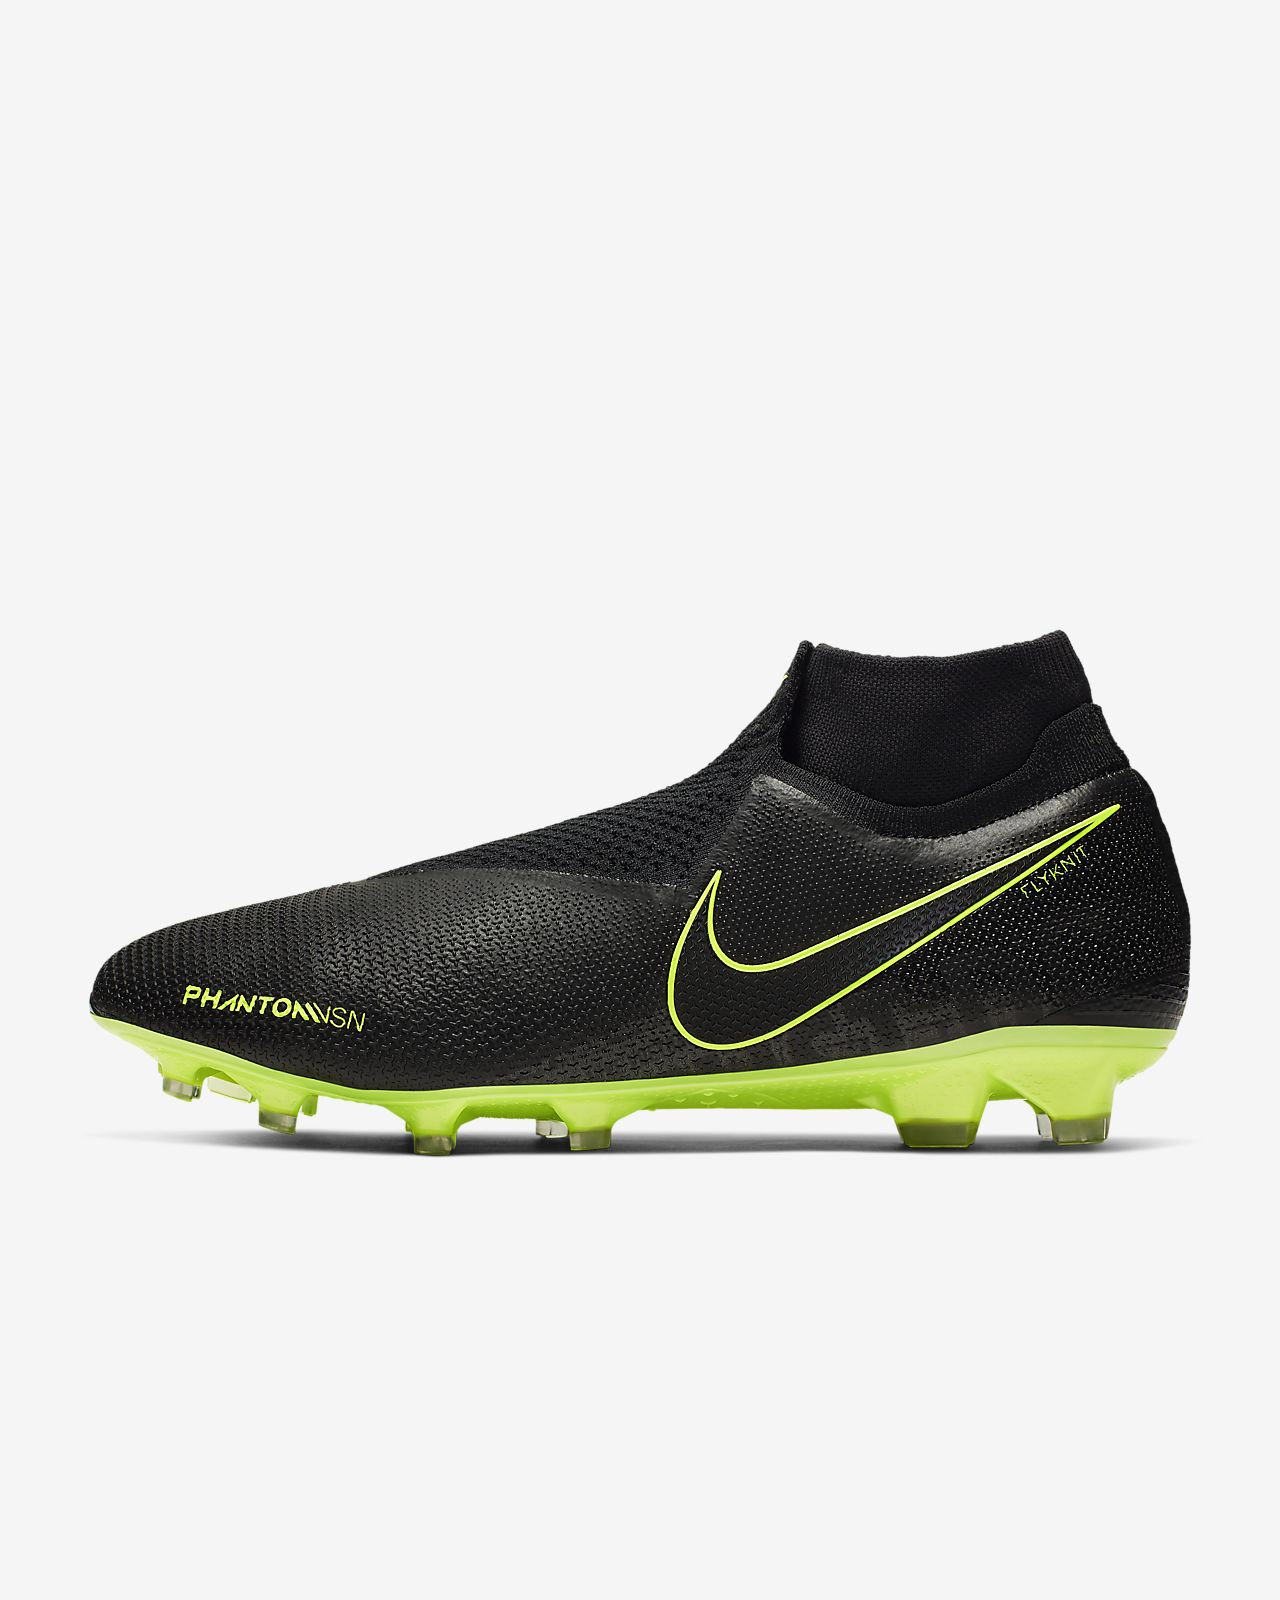 7b5fa4d2a Nike Phantom Vision Elite Dynamic Fit FG Firm-Ground Soccer Cleat ...